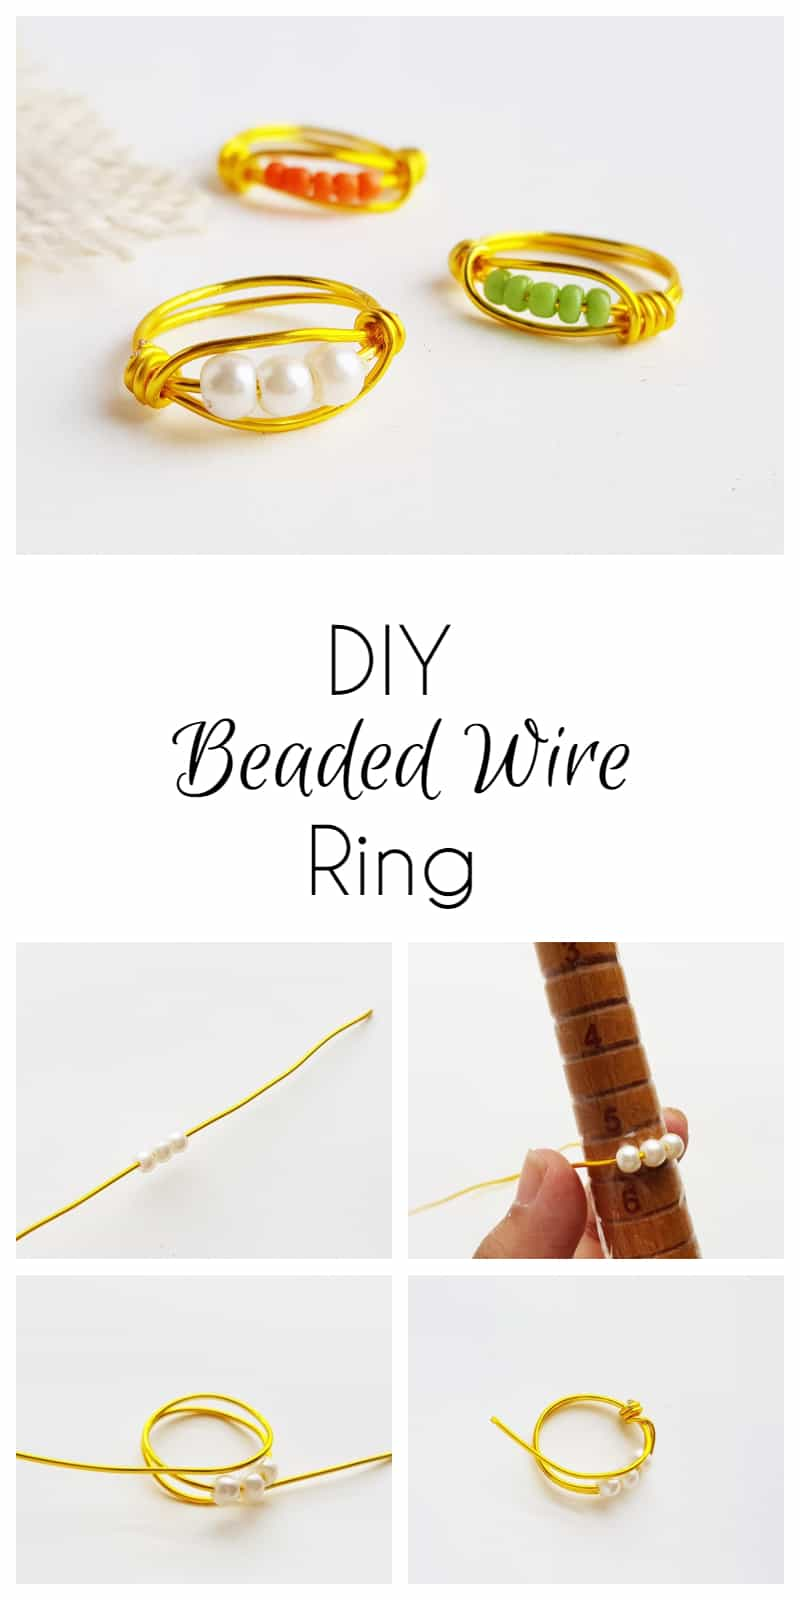 DIY Beaded Wire Ring